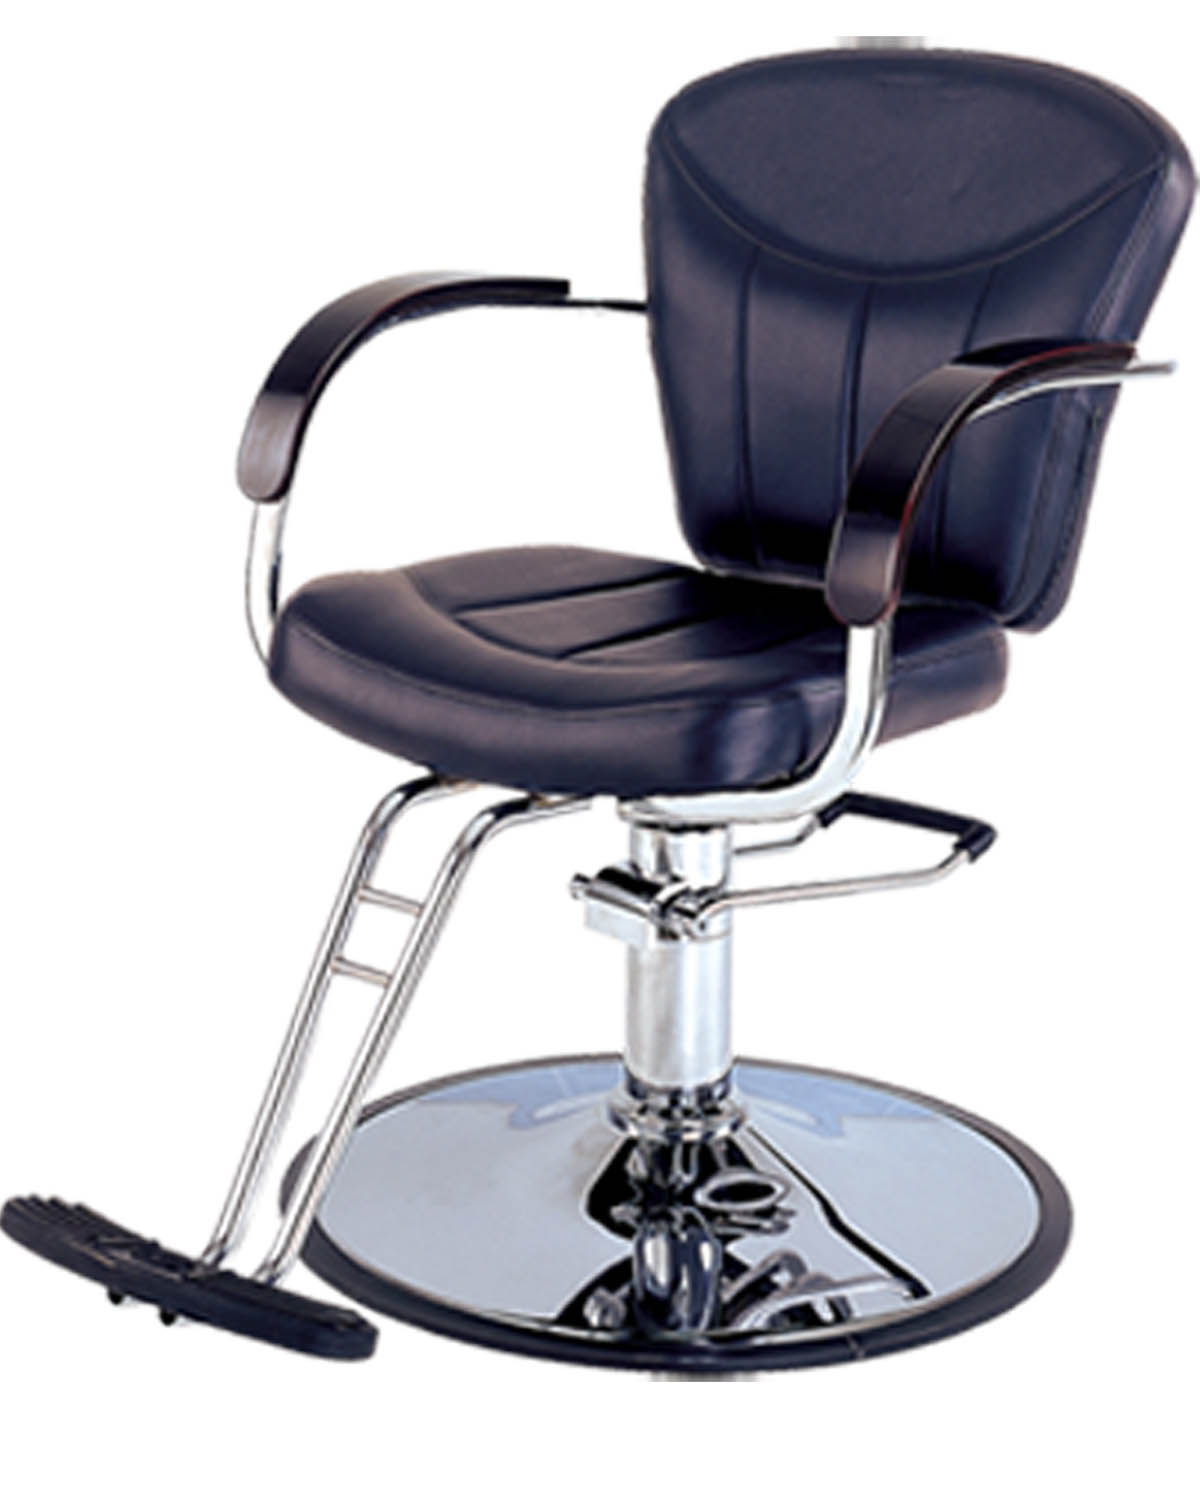 Beauty salon equipment trinidad classifieds for A and s salon supplies